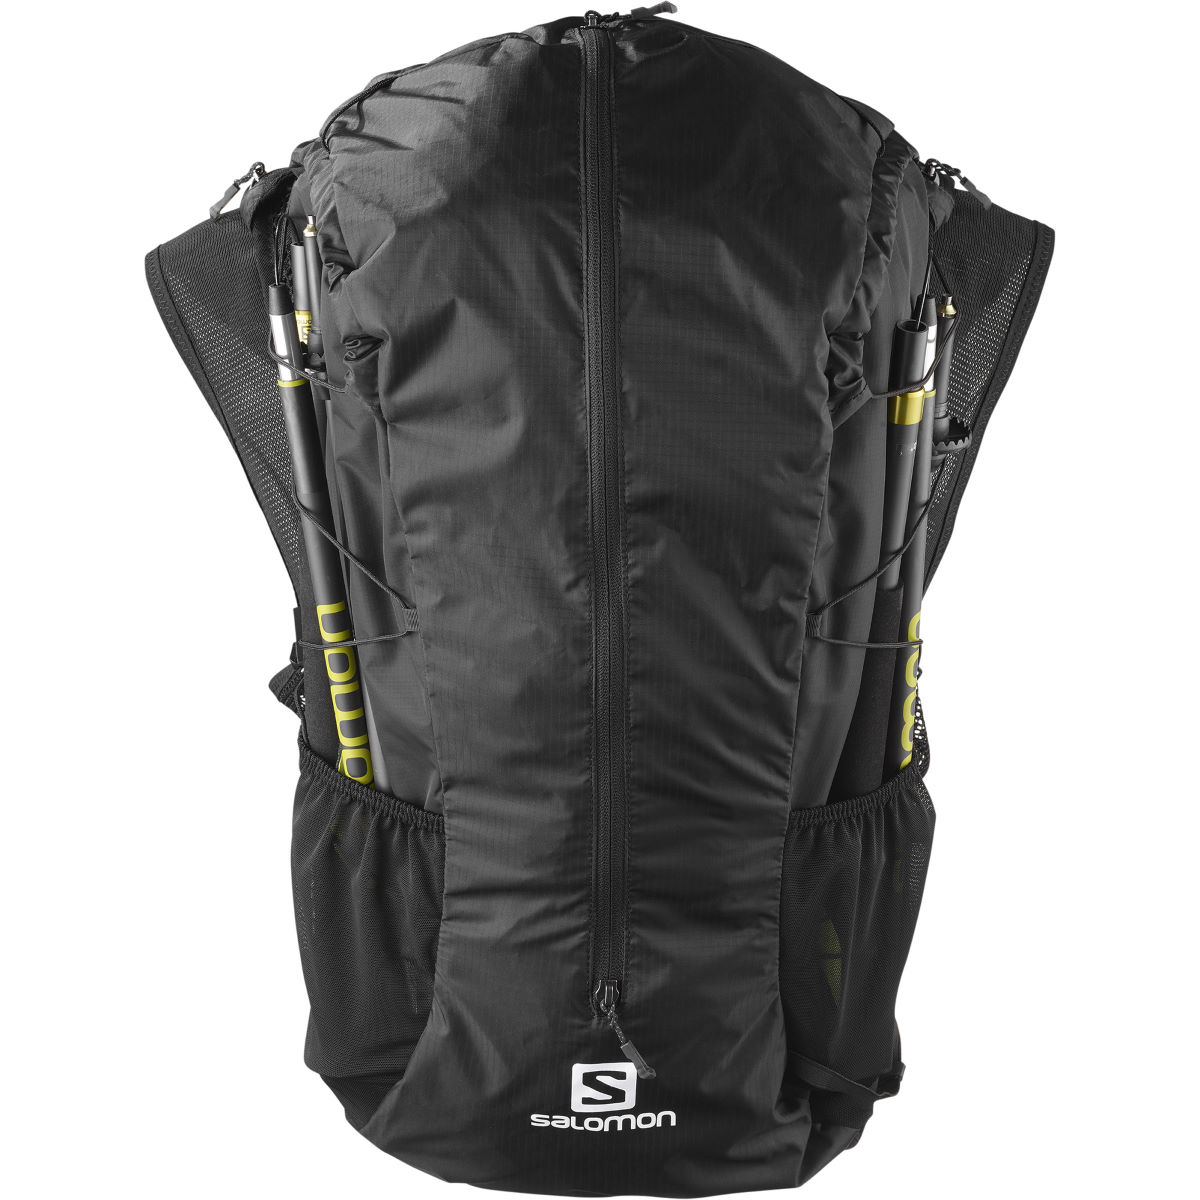 Sac à dos Salomon Out Peak 20 - S Black Sacs à dos